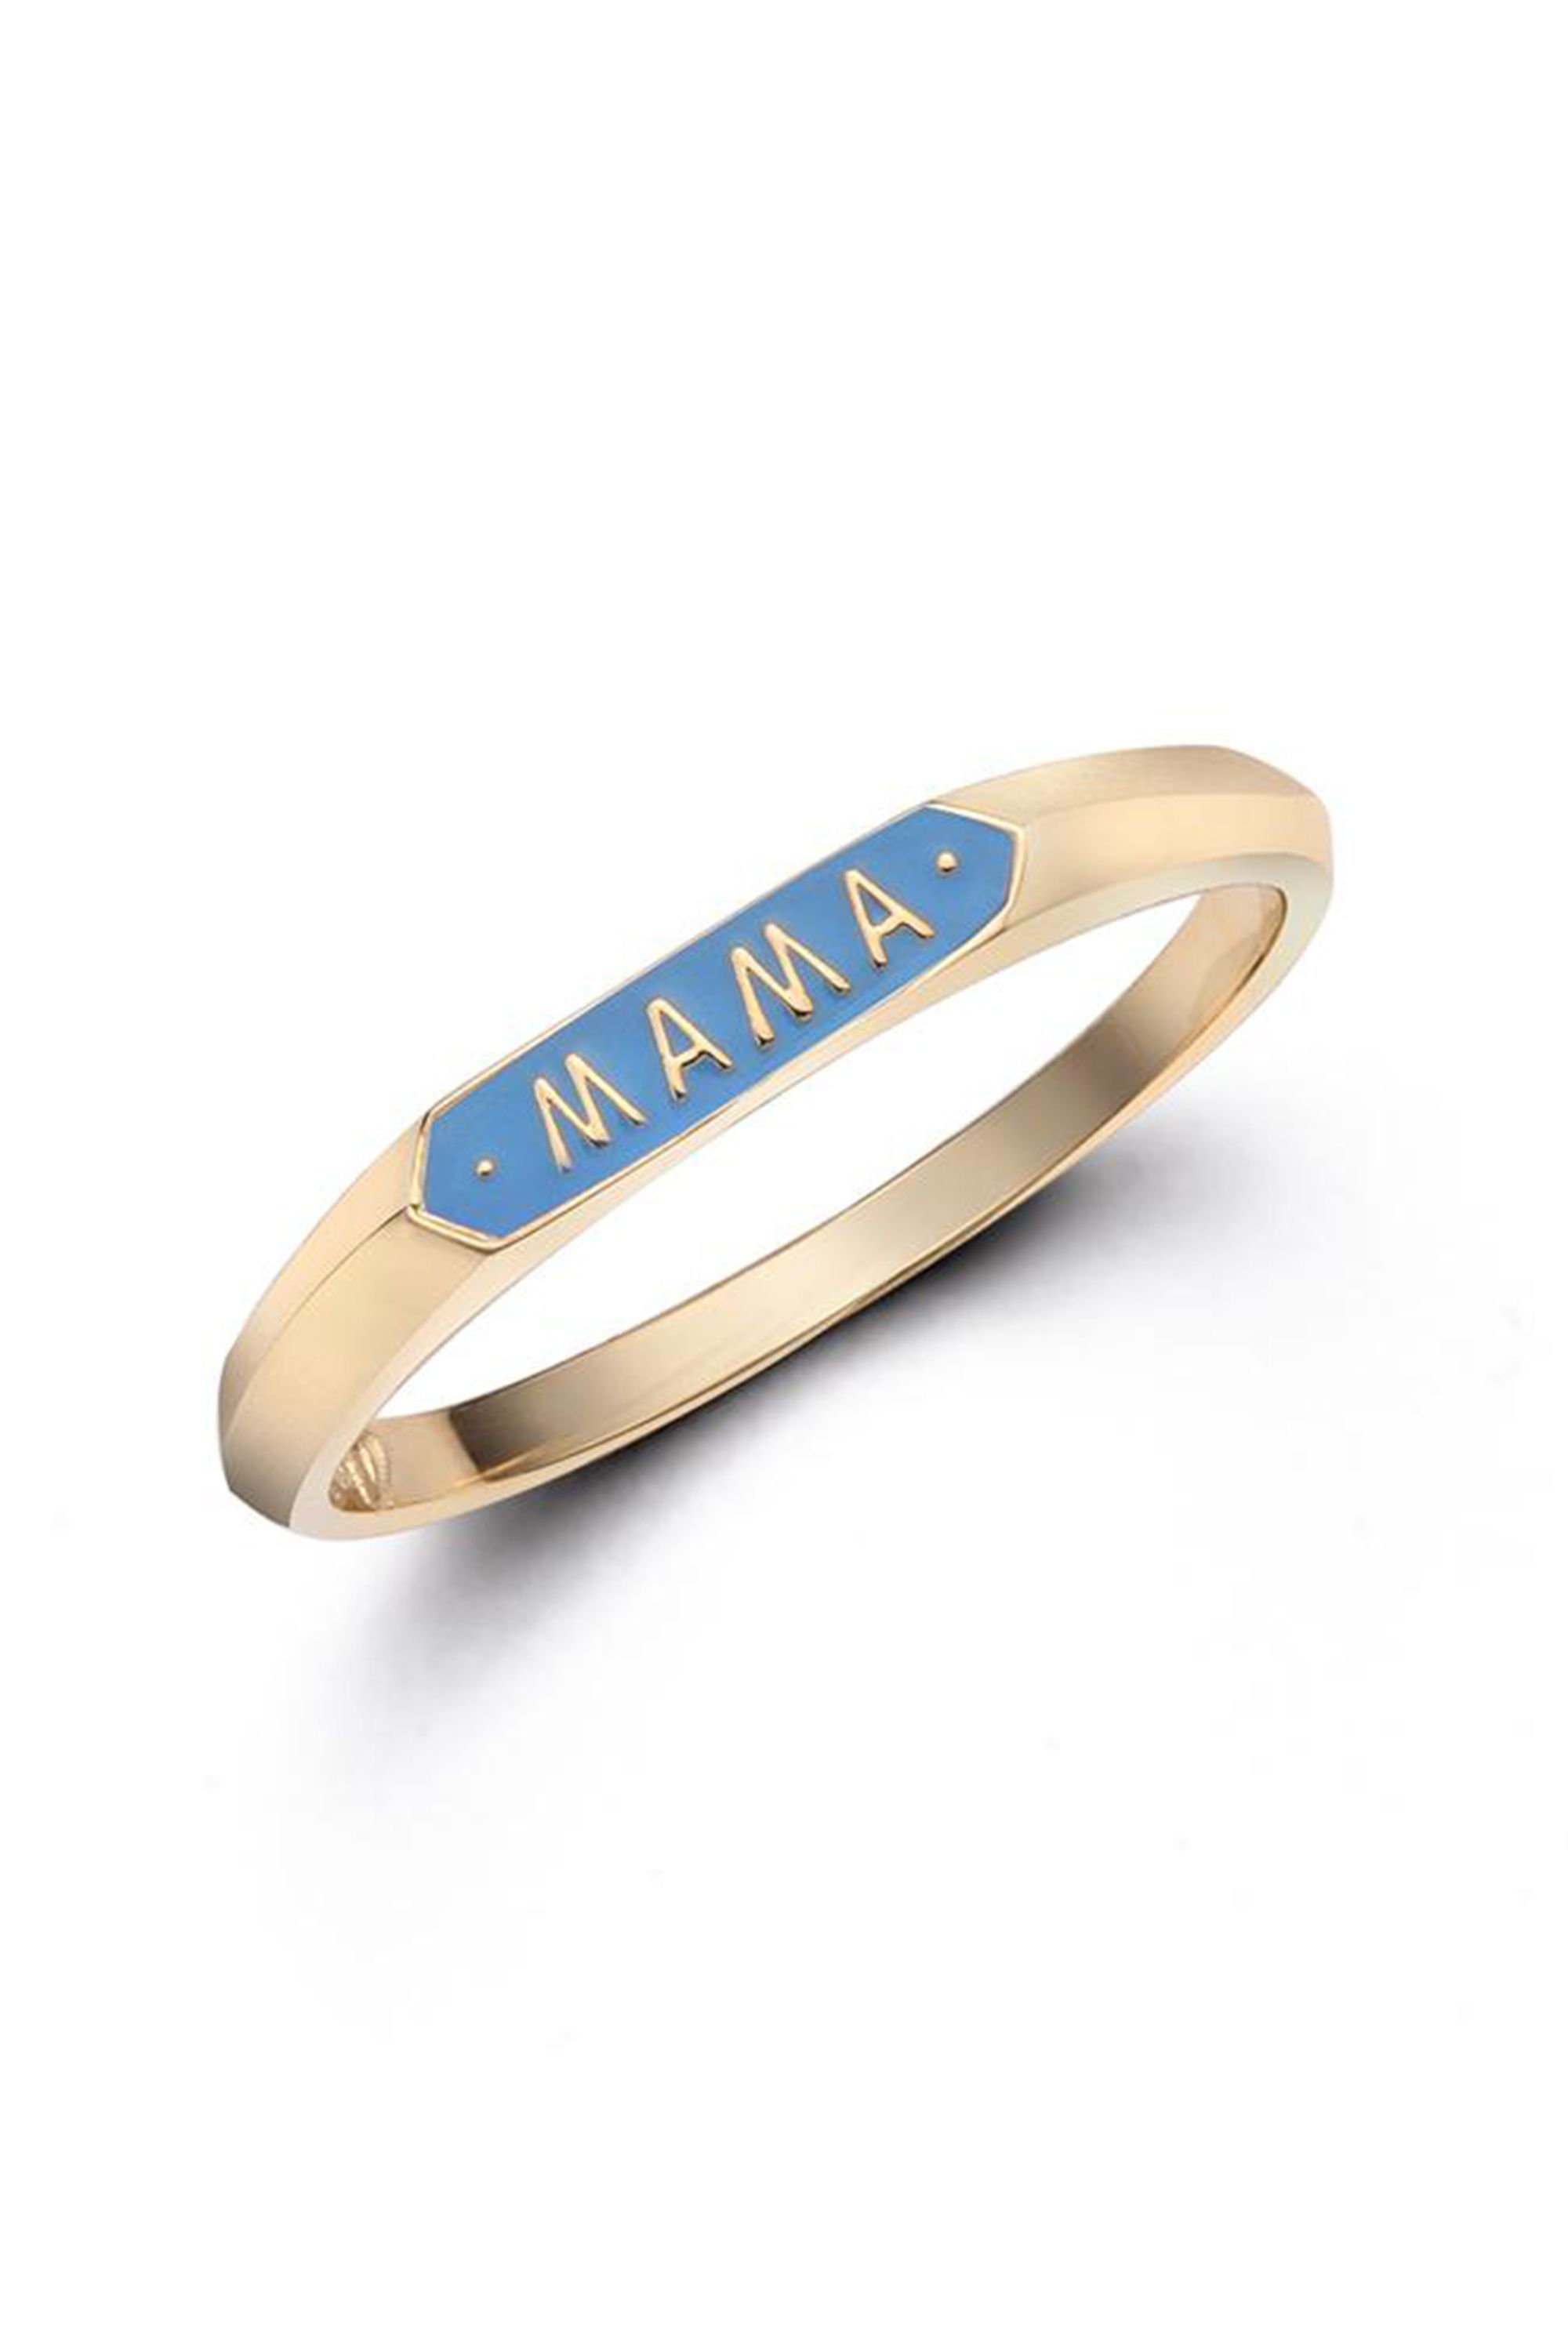 "Mama Signet Ring Nora Kogan norakogan.com $310.00 SHOP NOW ""Mom"" jewelry can get a little cheesy, but this enamel ring makes it playfully chic."